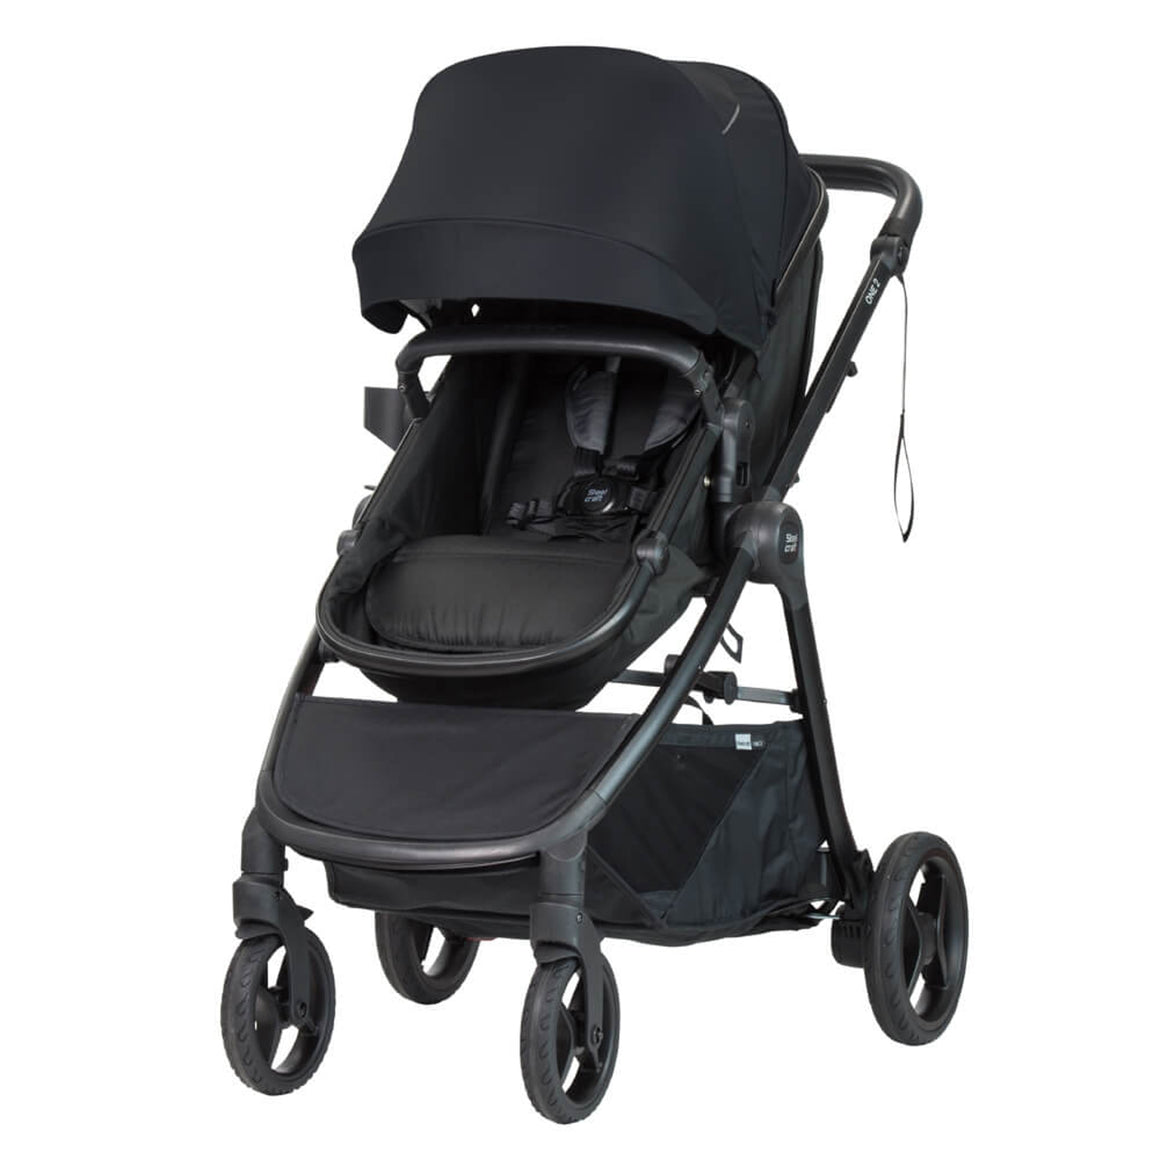 Steelcraft One 2 Stroller-Prams Strollers - 4 Wheel Prams-Steelcraft | Baby Little Planet